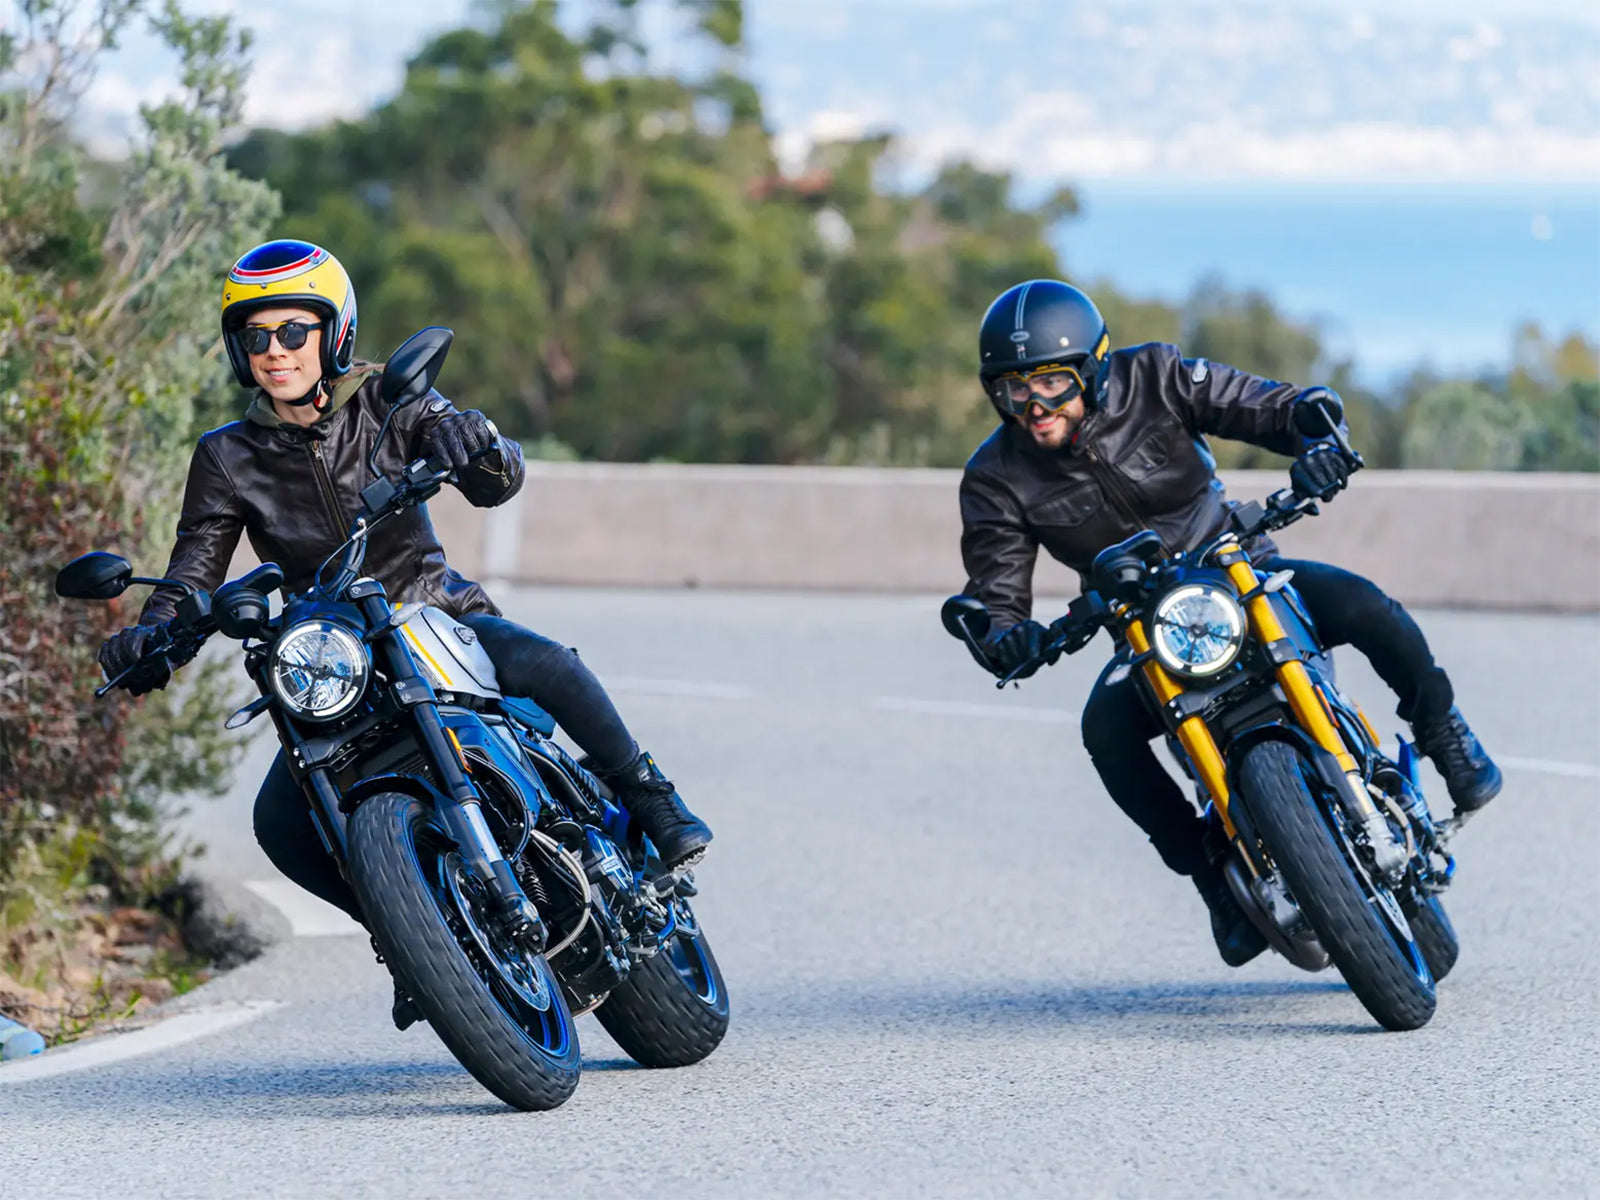 Ducati Motorcycle Reveal the new 2020 Scrambler 1100 Pro and Sport Pro